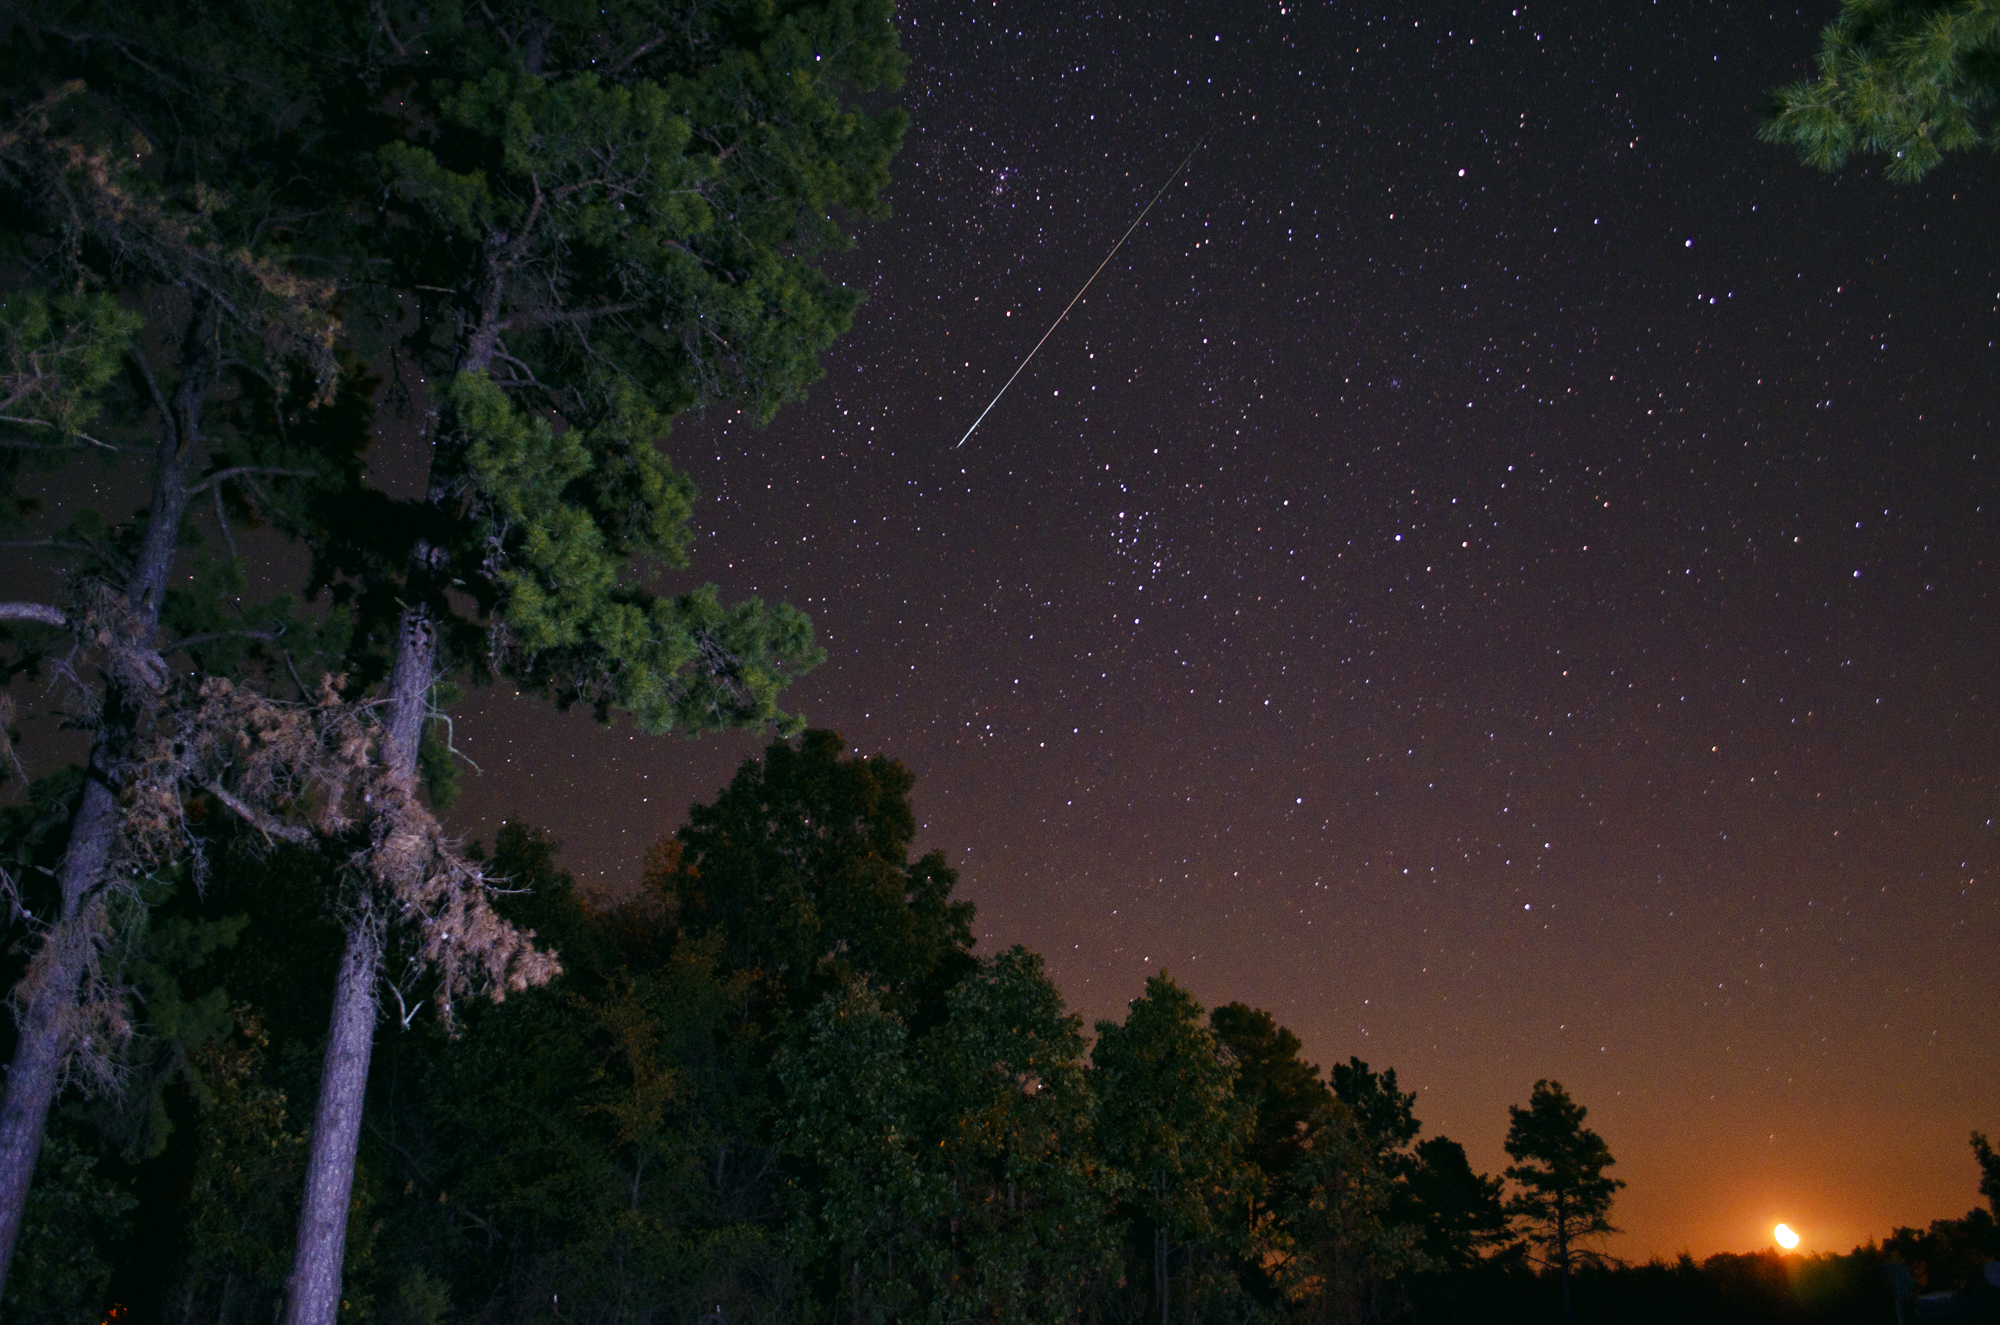 Perseid Meteor Shower 2012: Jeff Rose